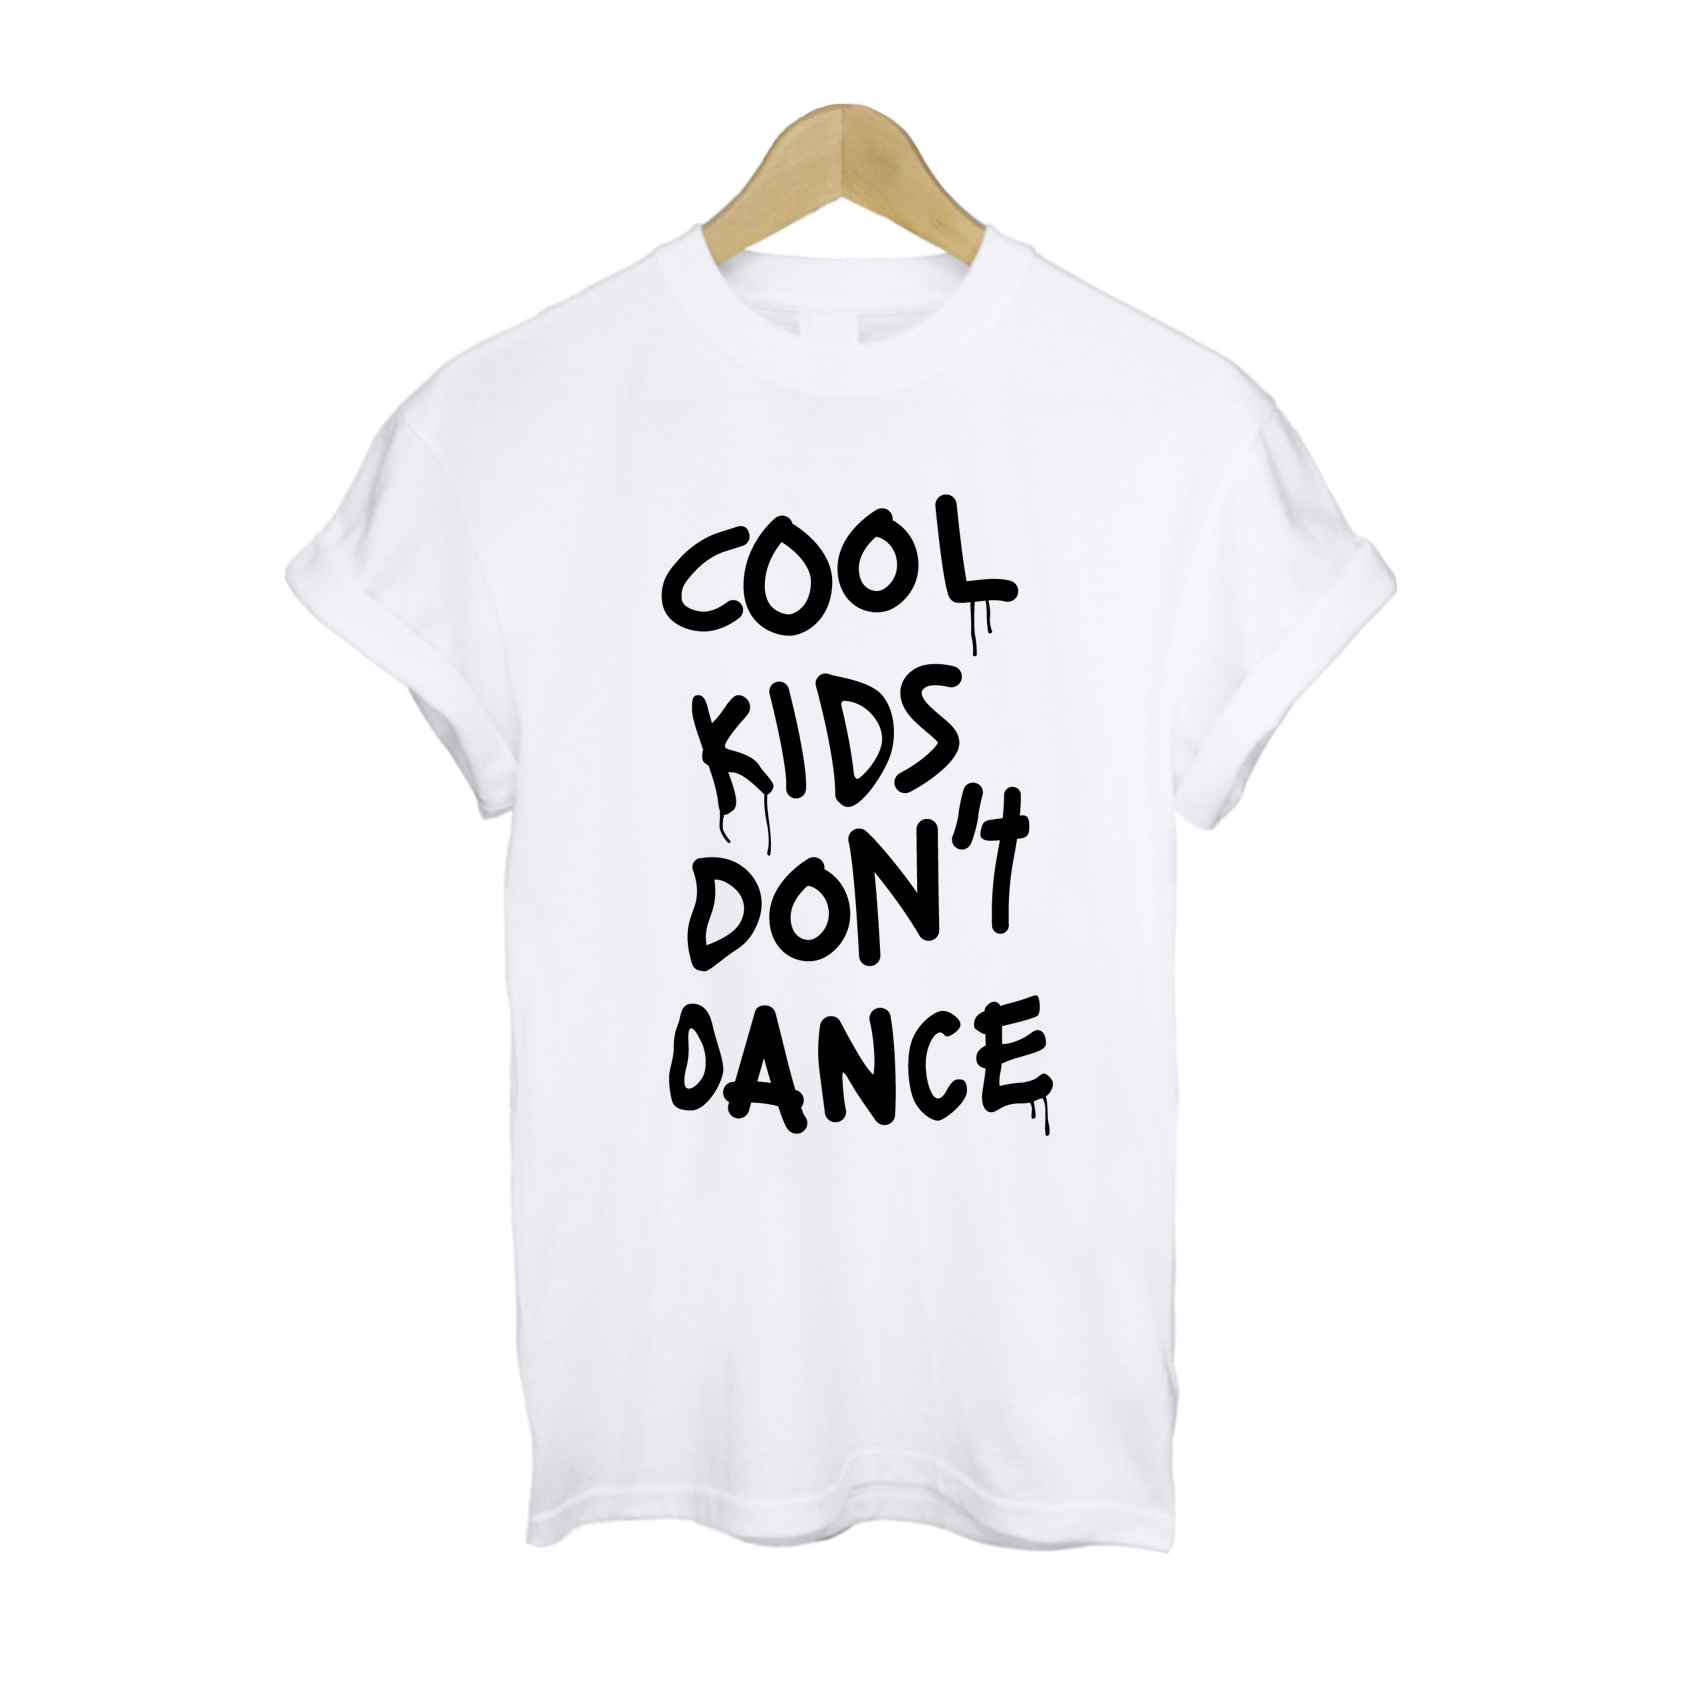 Cool Kids Don't Dance T Shirt £11   Free UK Delivery   10% OFF